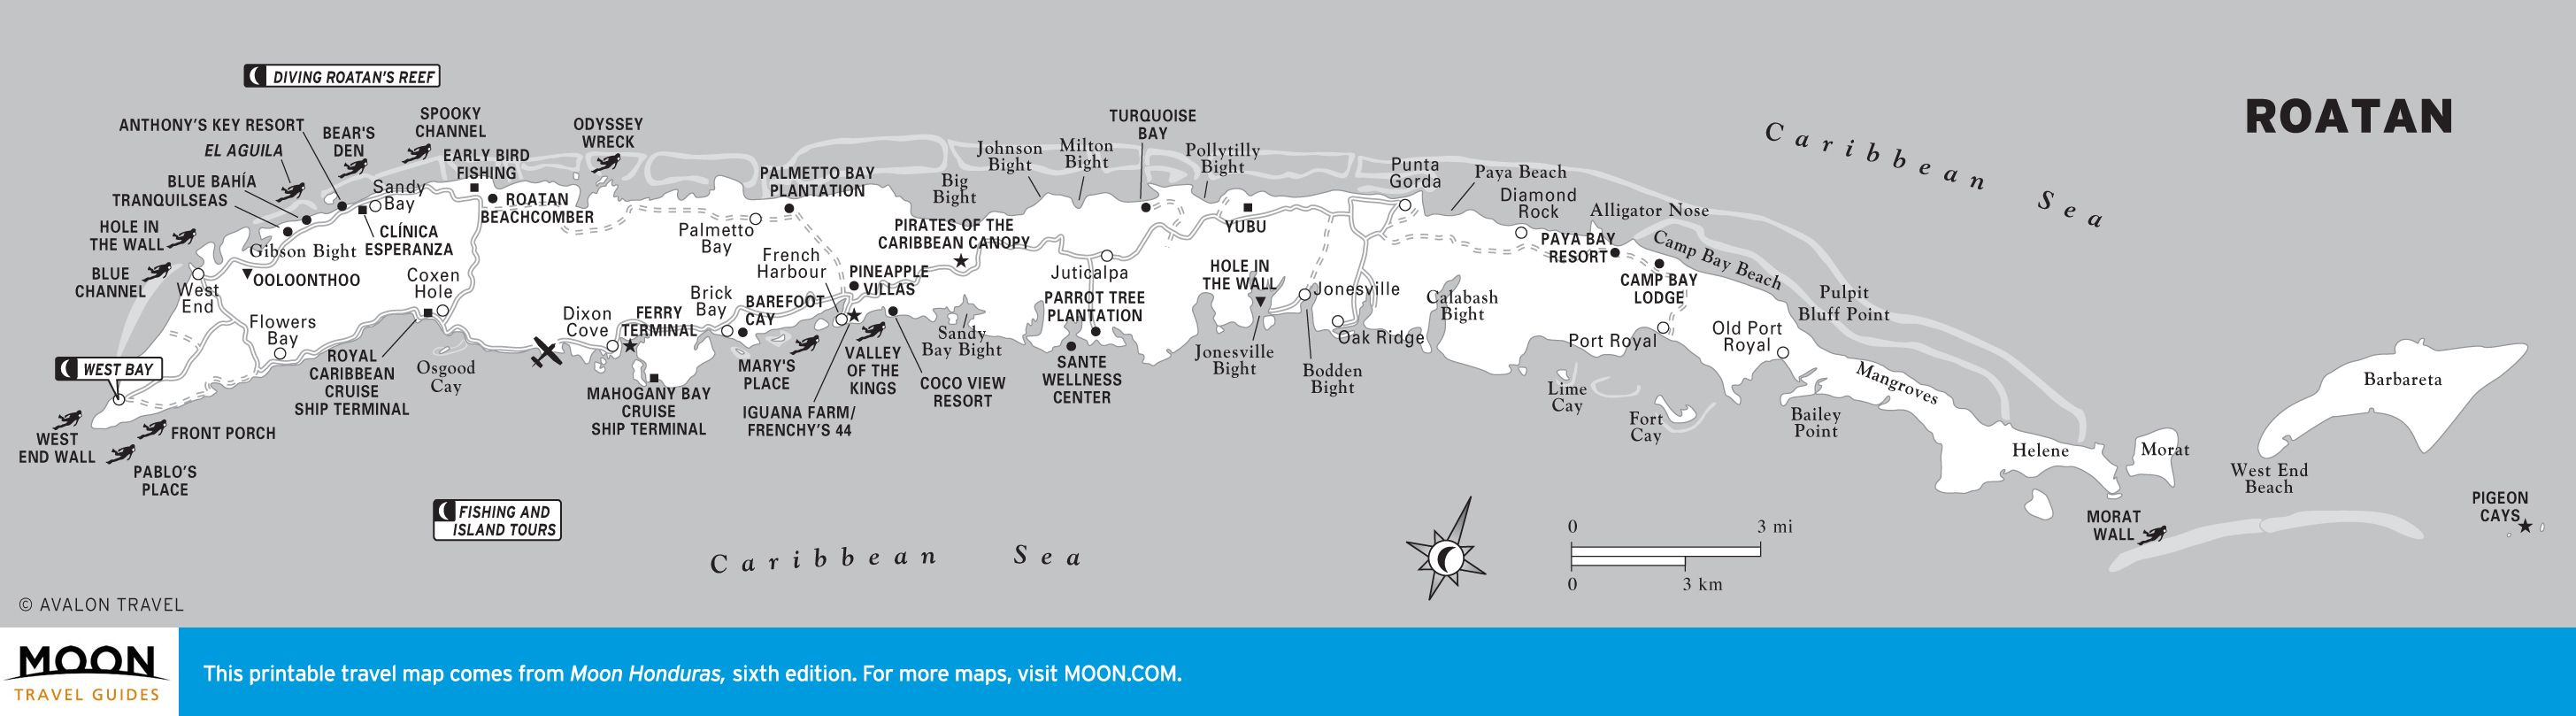 Printable Travel Maps Of Honduras | Travel | Honduras Travel, Travel - Printable Map Of Honduras